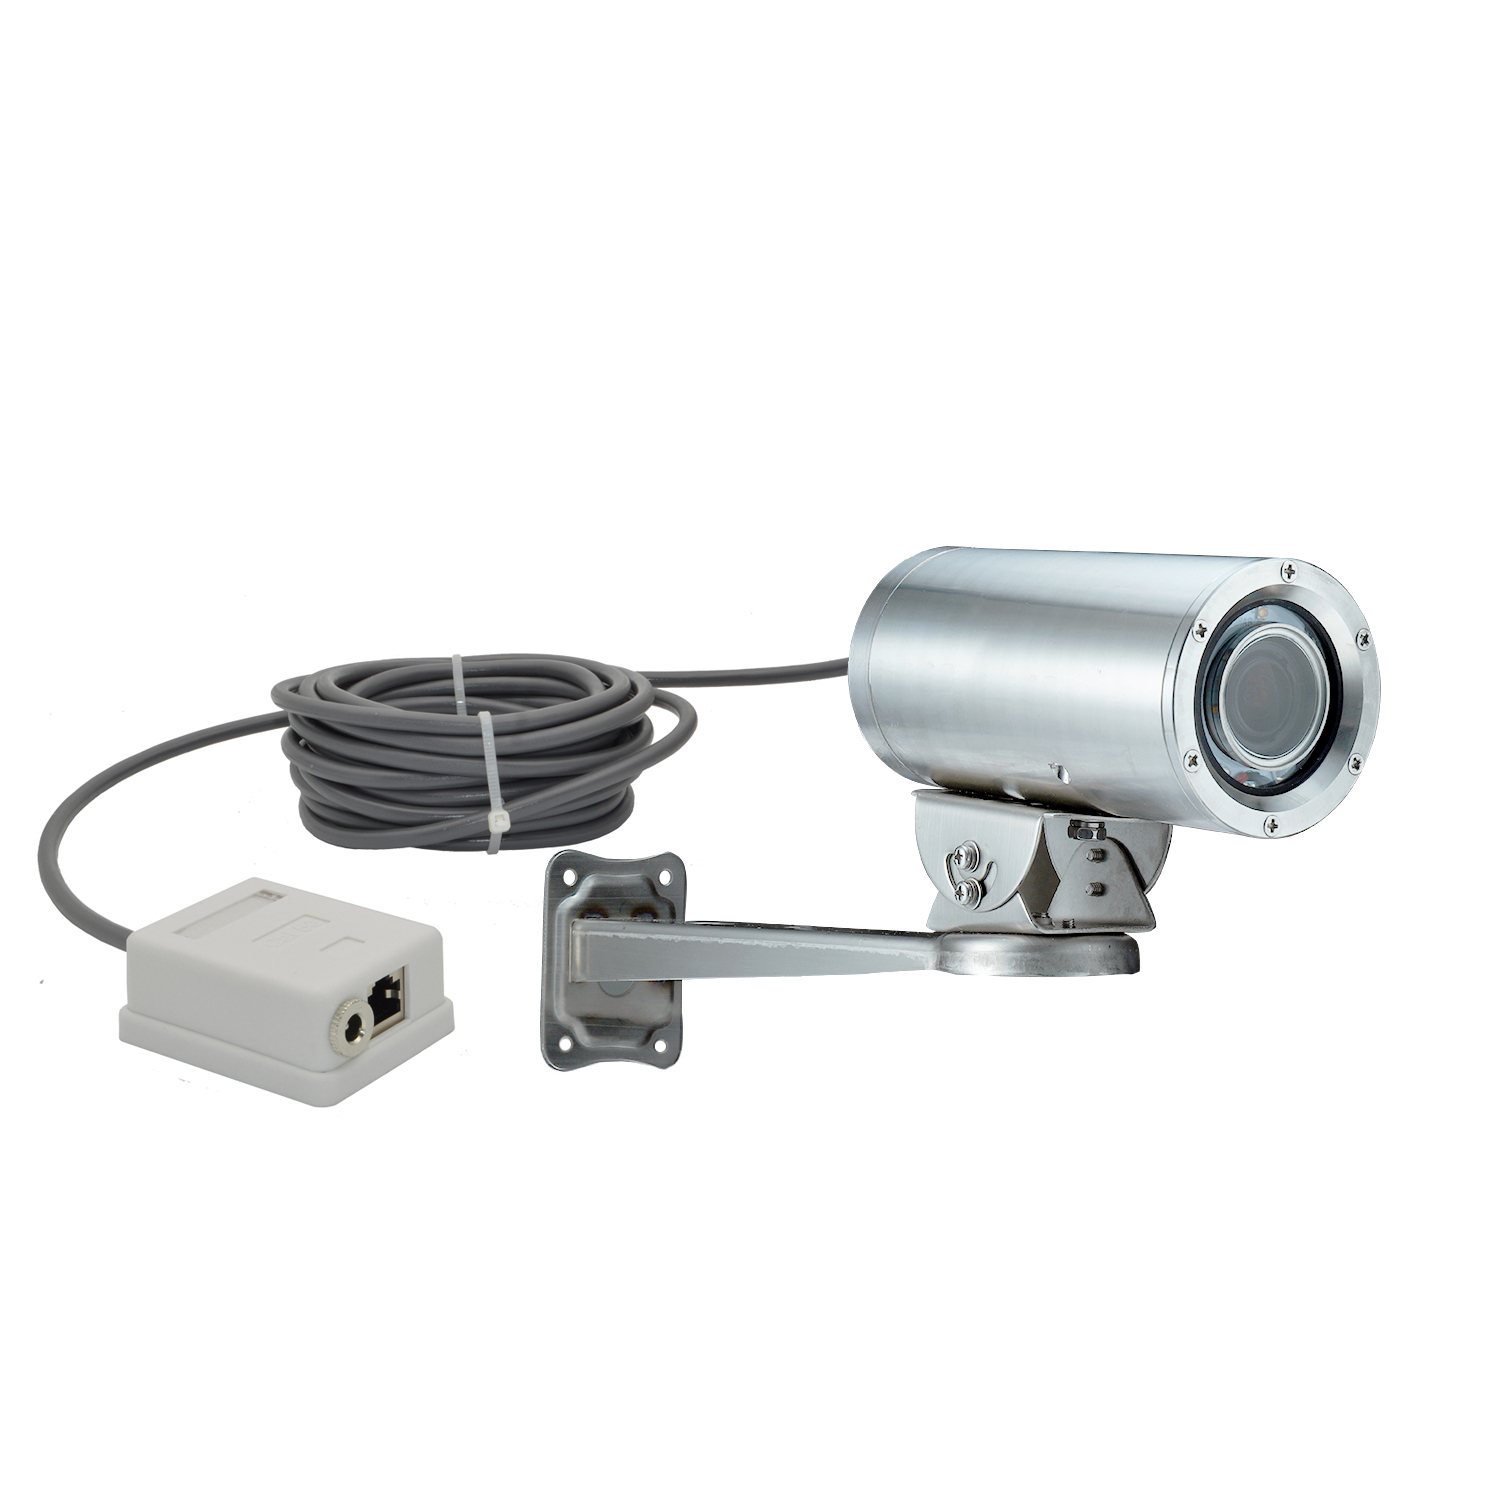 2MP Underwater Observation camera  for cctv sewer inspection camera